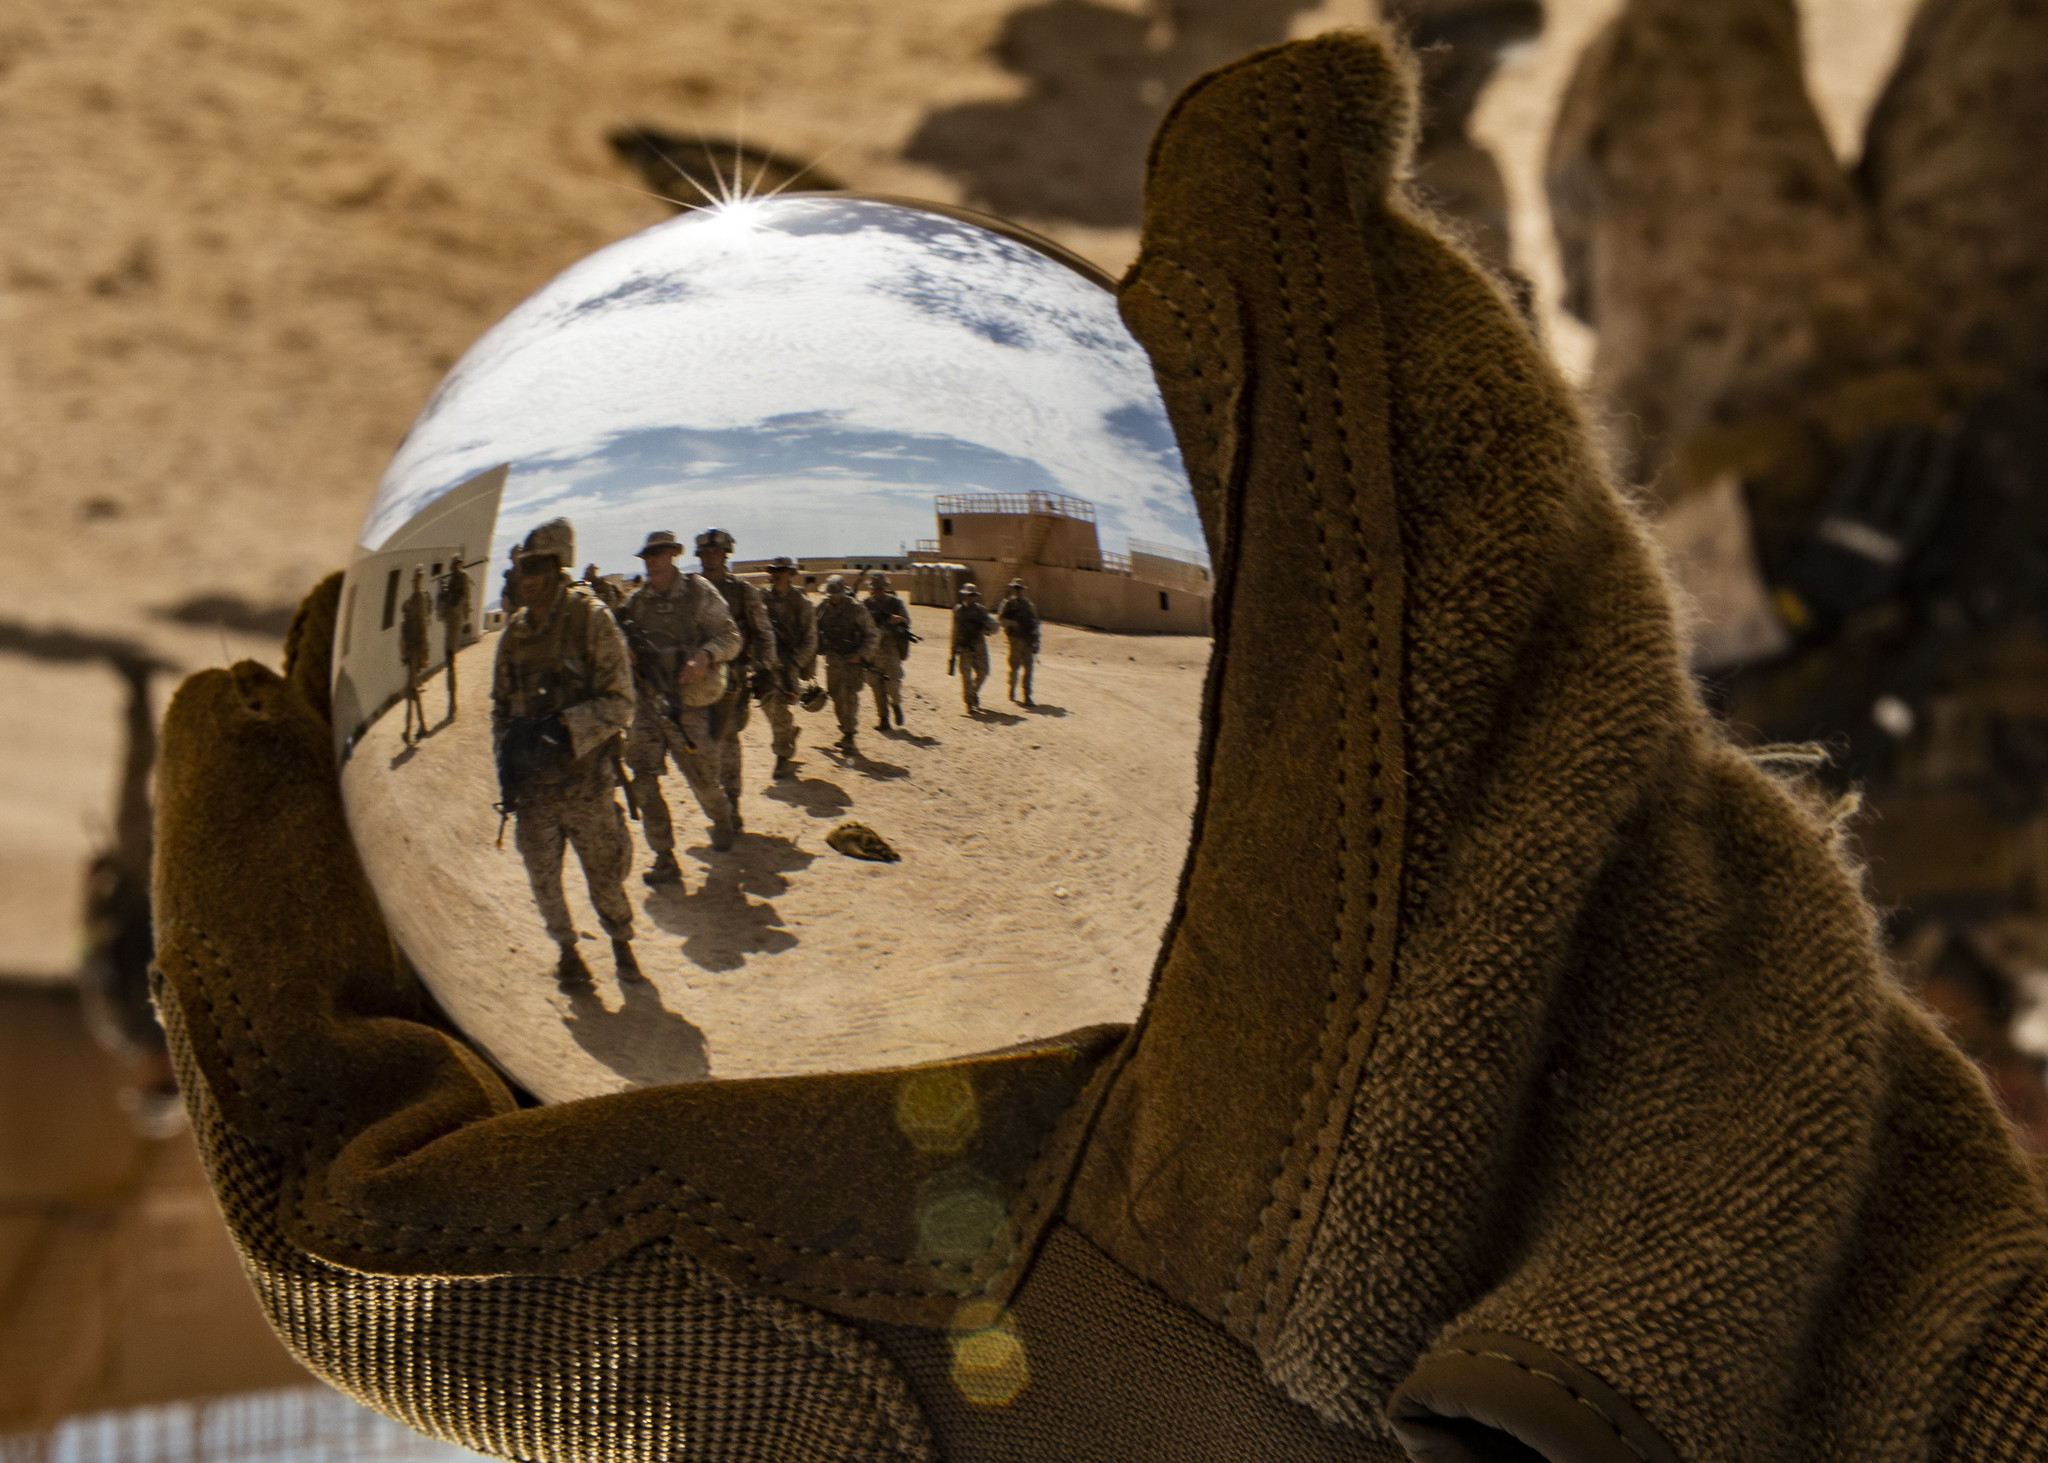 Marines hike towards their next objective during Integrated Training Exercise 5-19 at Marine Corps Air Ground Combat Center Twentynine Palms, Calif., July 31, 2019. (Lance Cpl. Jose Gonzalez/Corps)